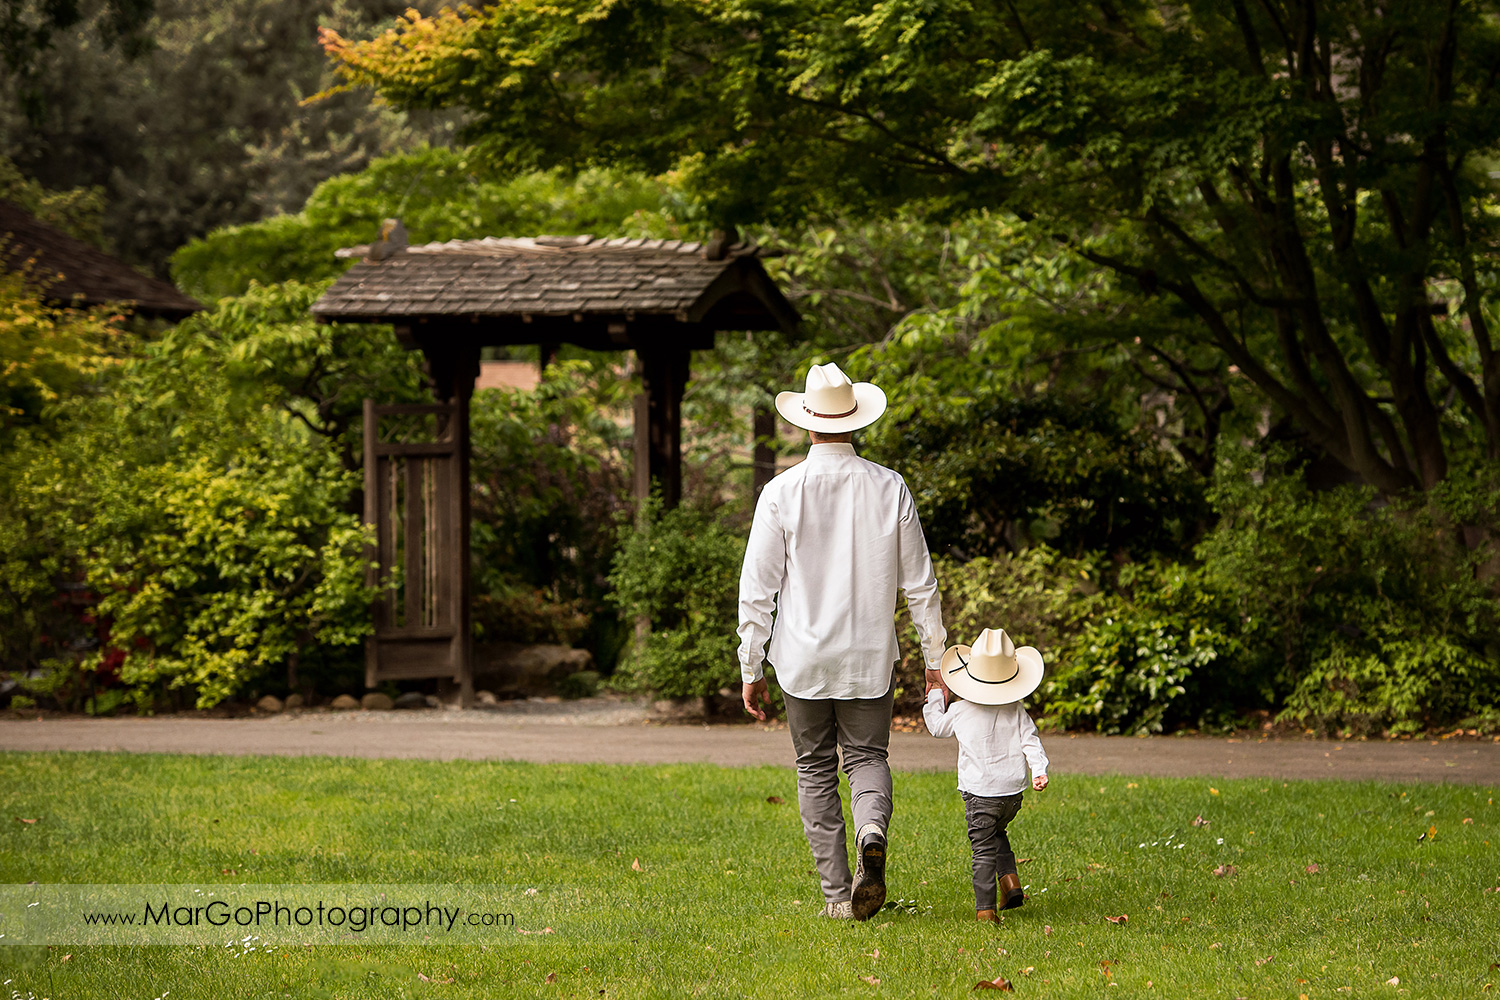 man and little boy in white shirts and cowboy hats walking on the grass in Shinn Historical Park and Arboretum in Fremont